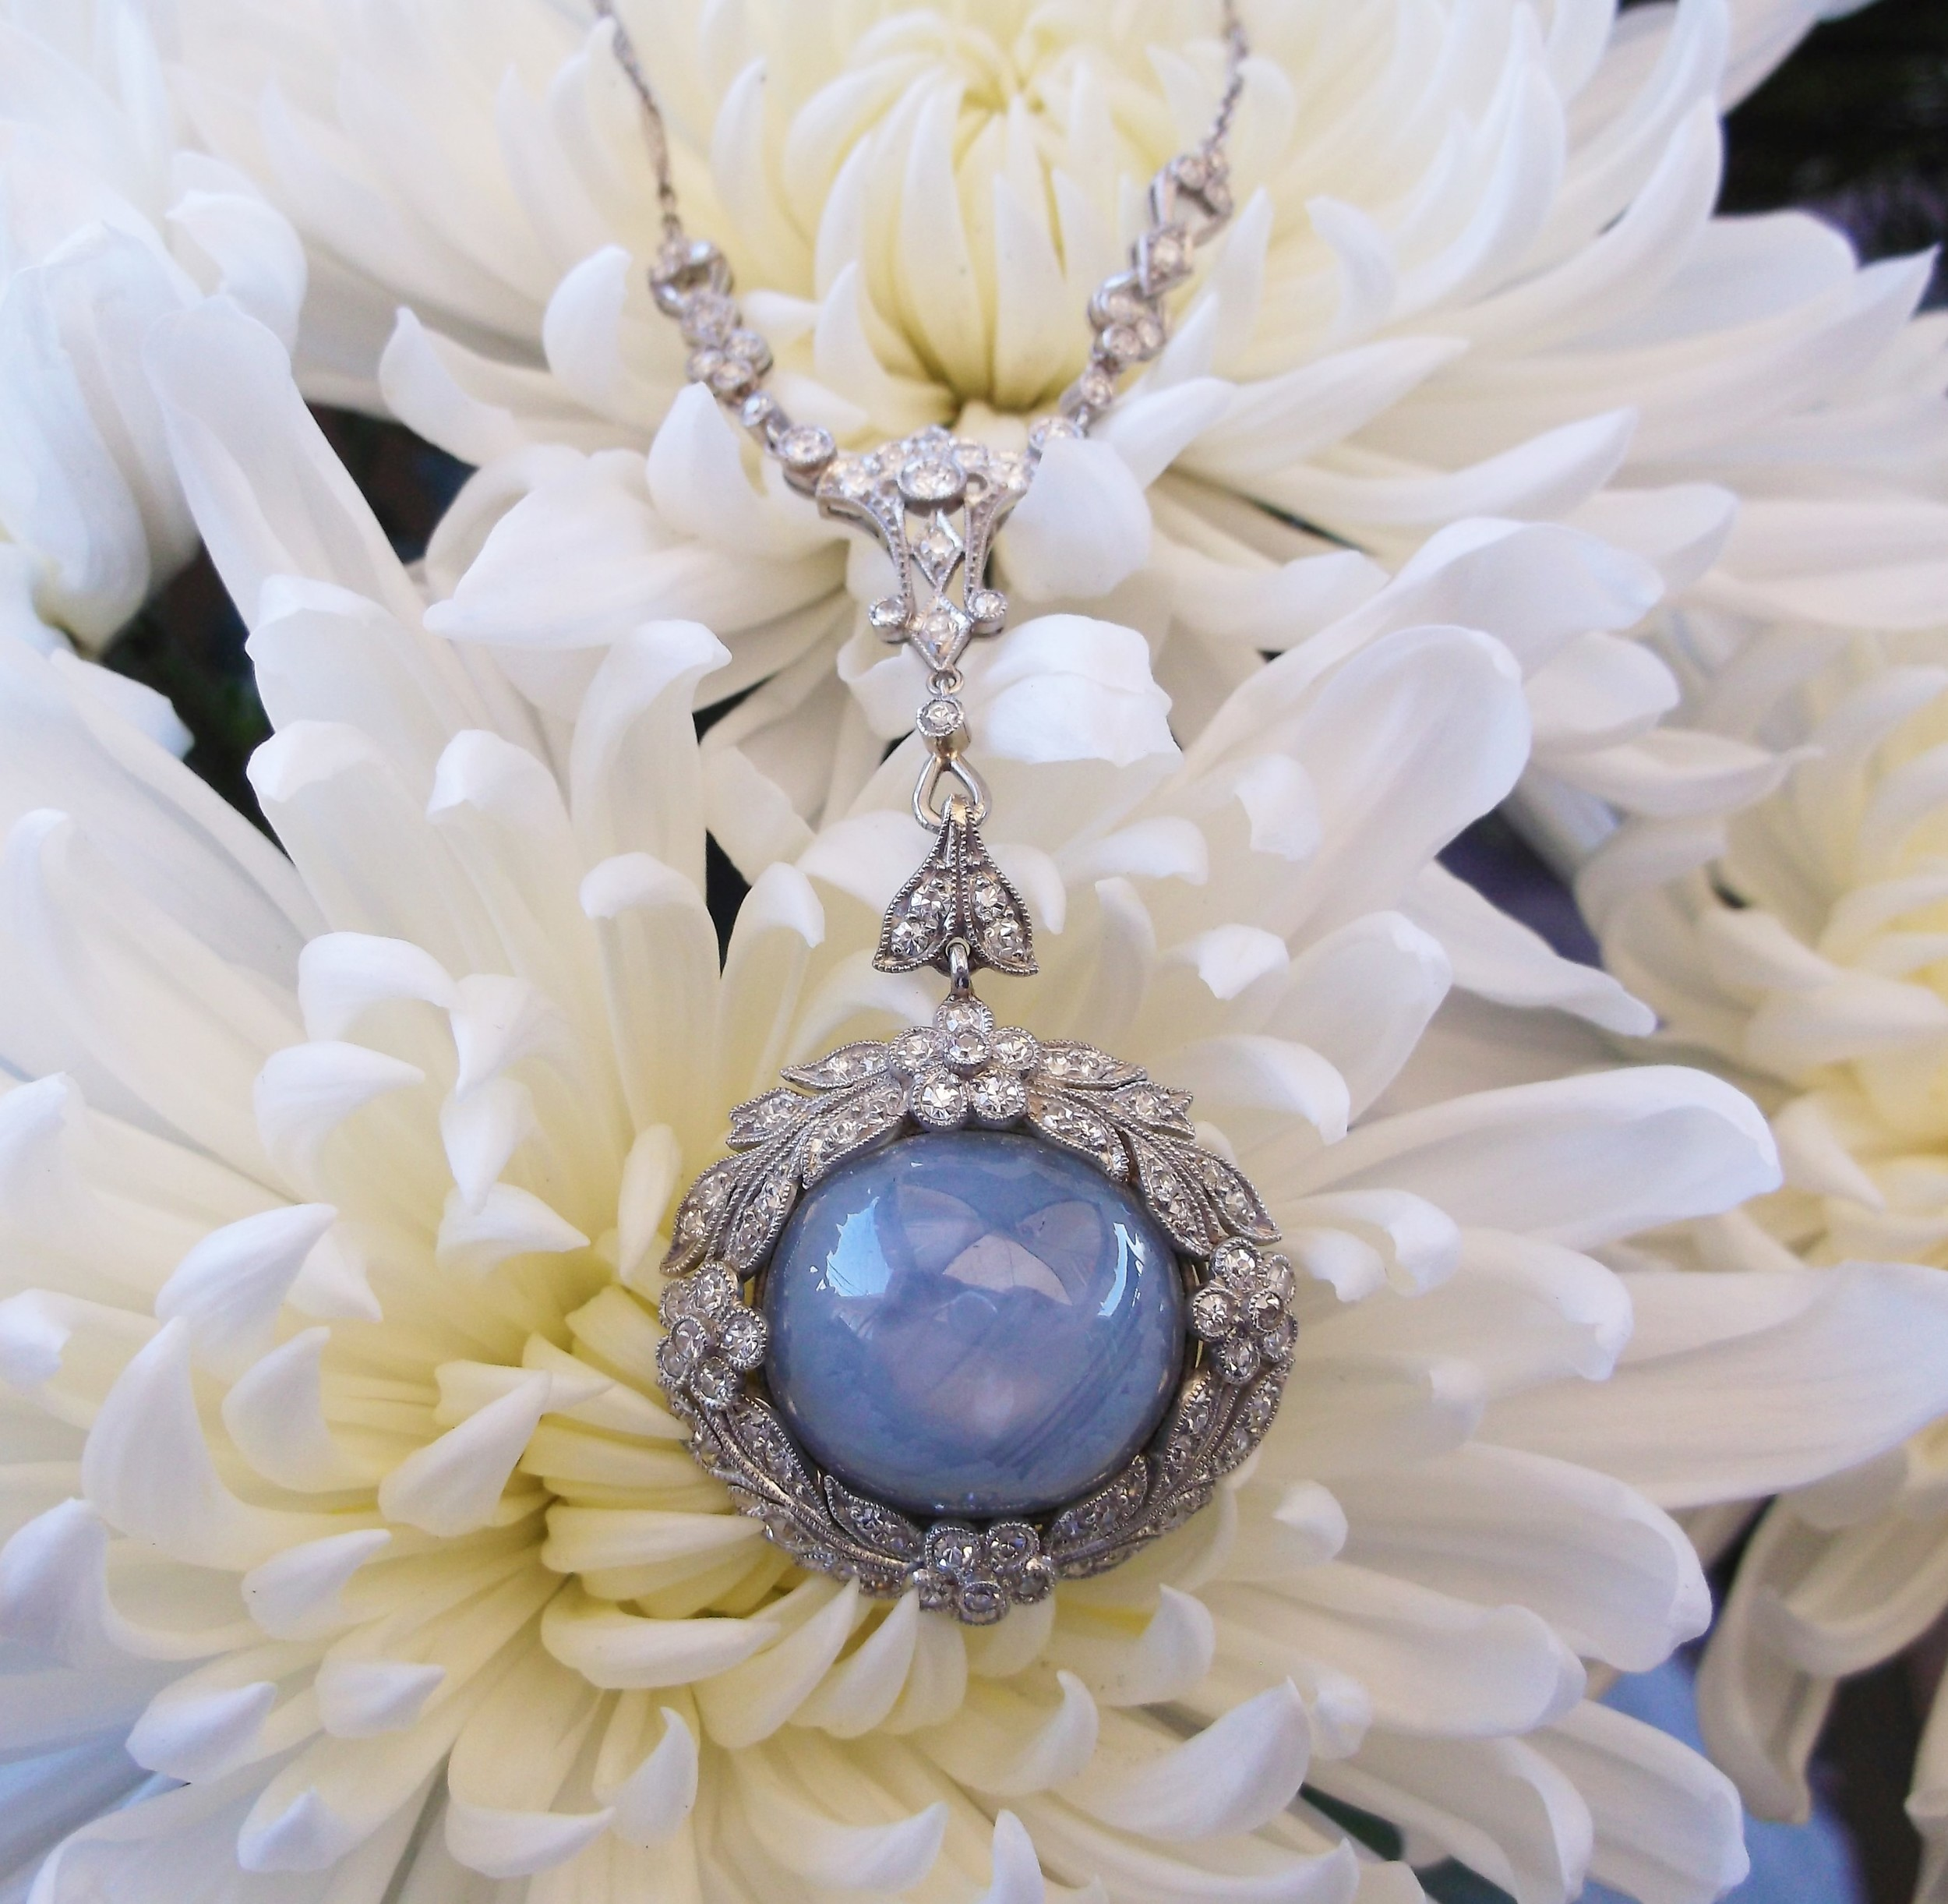 SOLD - Incredible Art Deco star sapphire and diamond pendant.  The star sapphire is approximately 27.84 carats with approximately 1.50 carats total weight in diamonds.